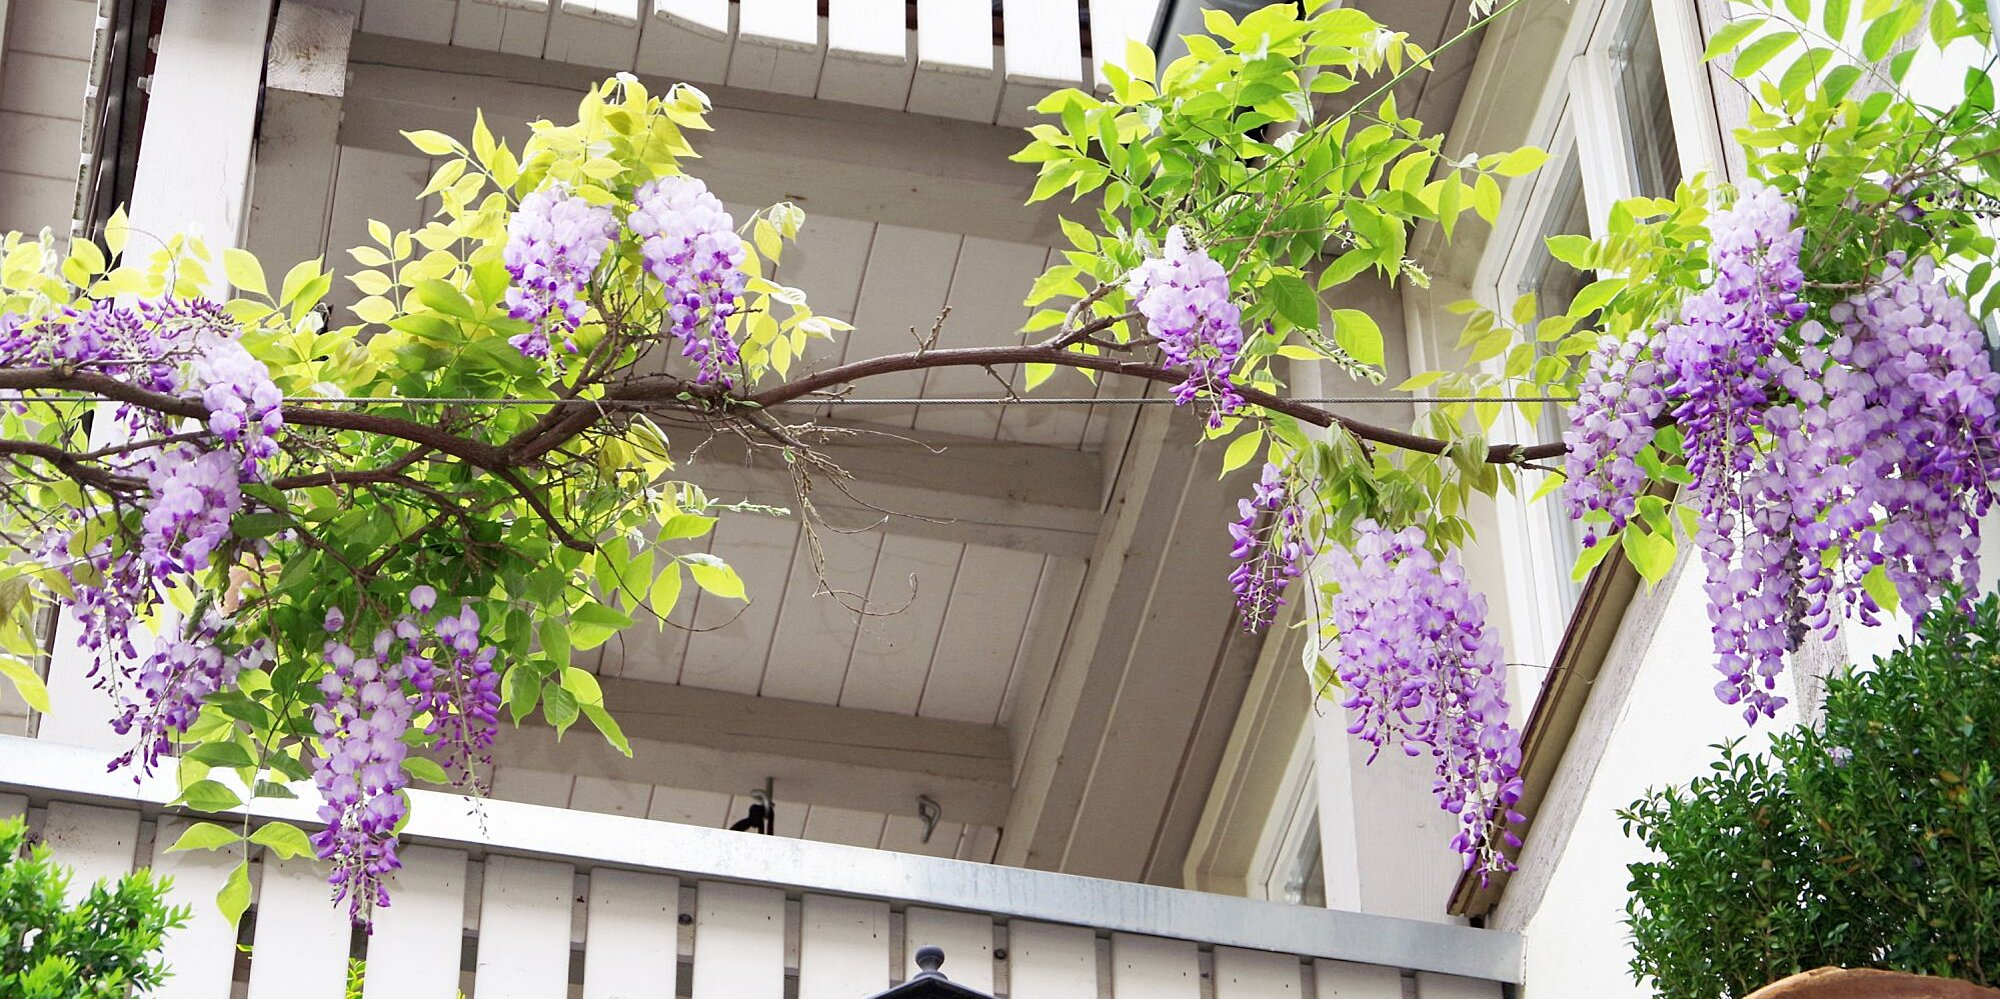 10 Flowering Vines to Add Beauty (and Privacy) to Your Backyard